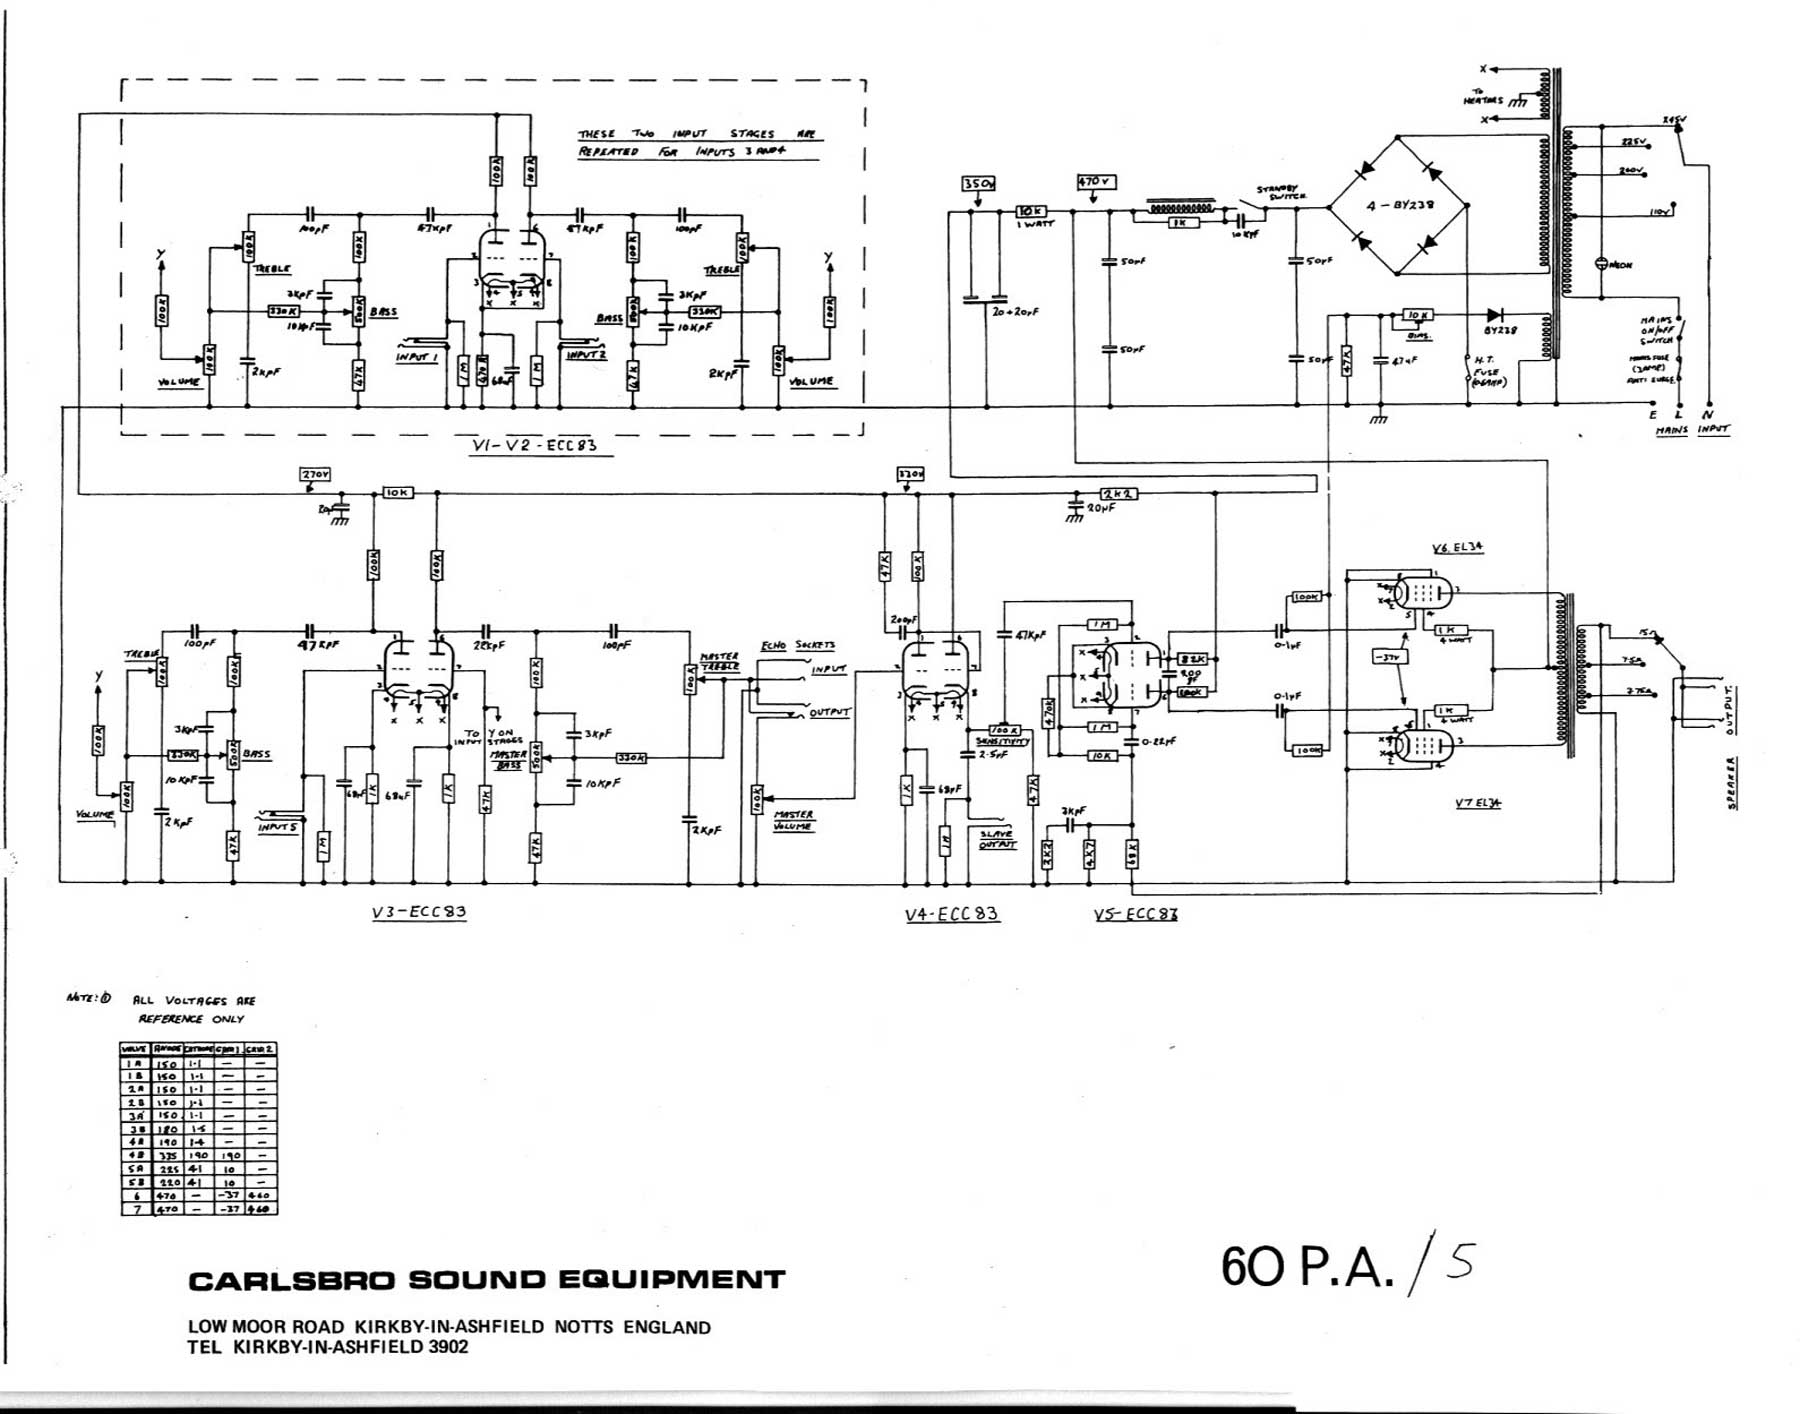 For Sa 200 Wiring Schematics Carlsbro 60 Pa 5 Amp Schematic